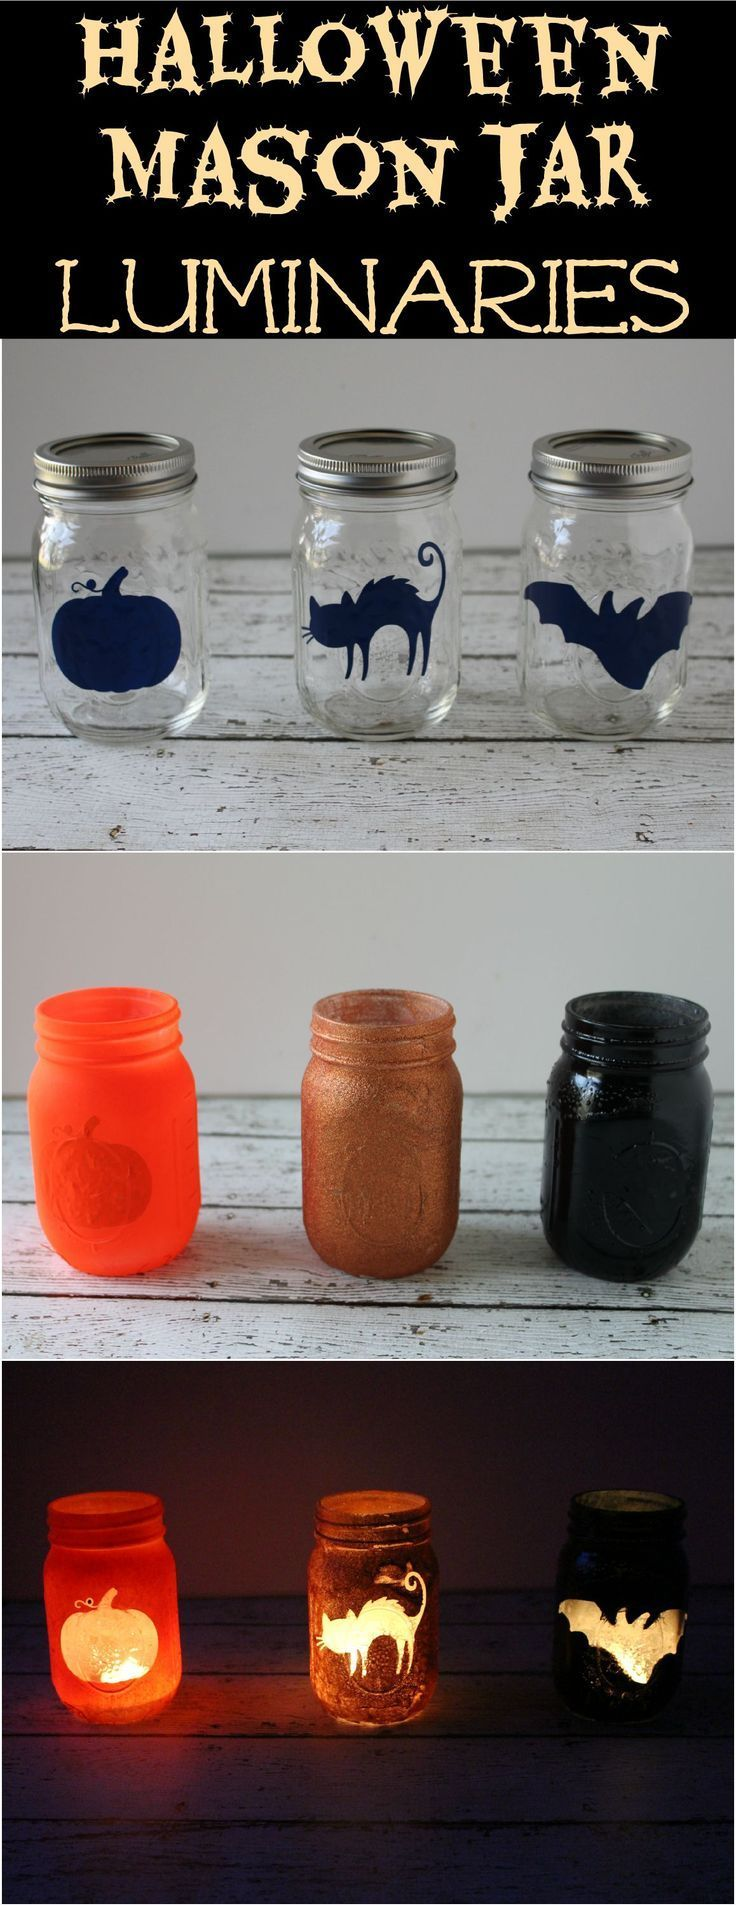 Halloween mason jar luminaries a crazy easy halloween decoration